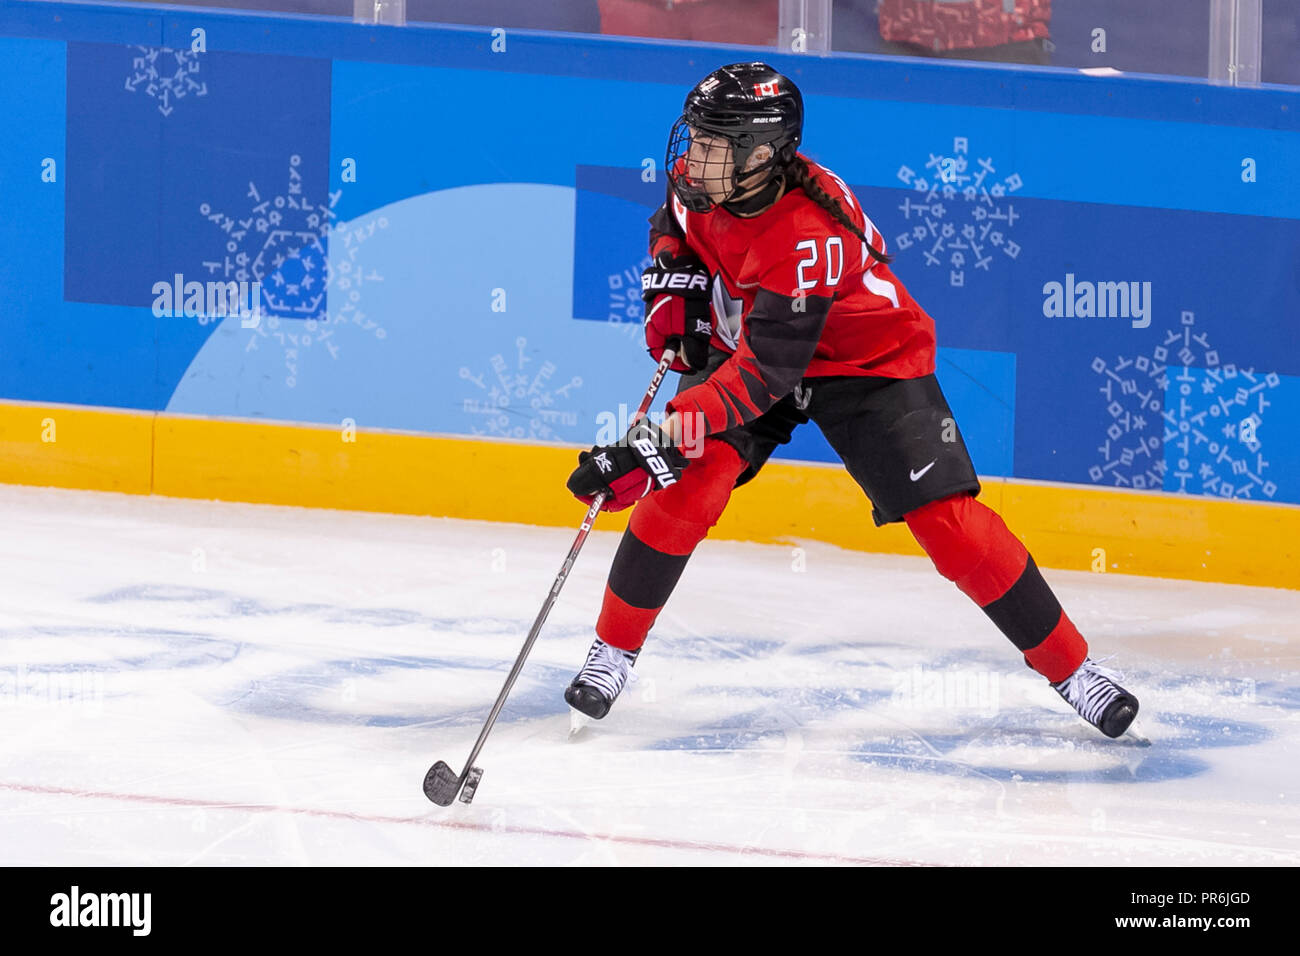 Sarah Nurse (CAN) during Team OAR vs Team Cananda competing in Women's hockey at the Olympic Winter Games PyeongChang 2018 - Stock Image